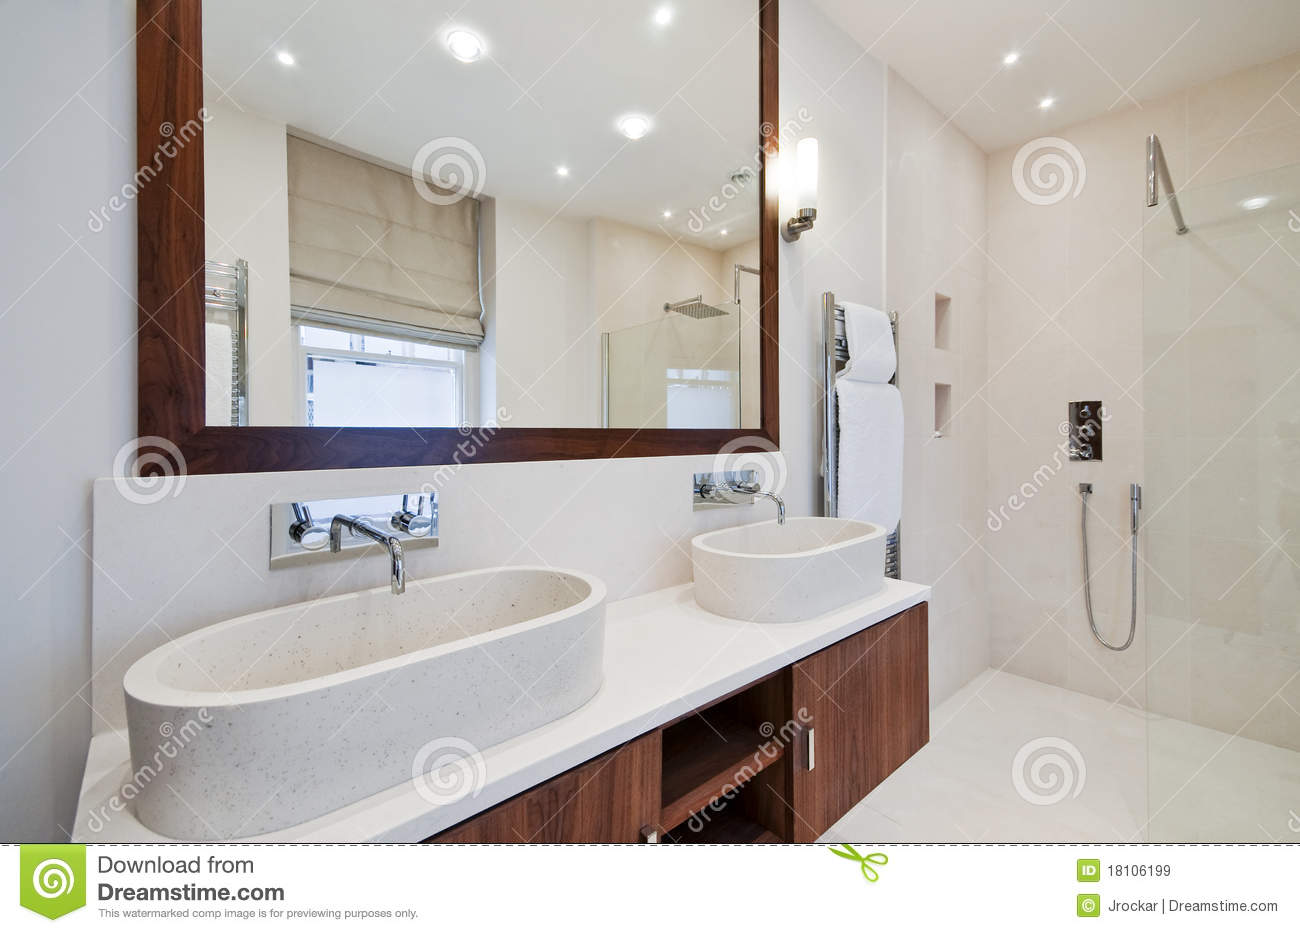 salle de bains avec le double lavabo de main image stock image du robinet coin 18106199. Black Bedroom Furniture Sets. Home Design Ideas